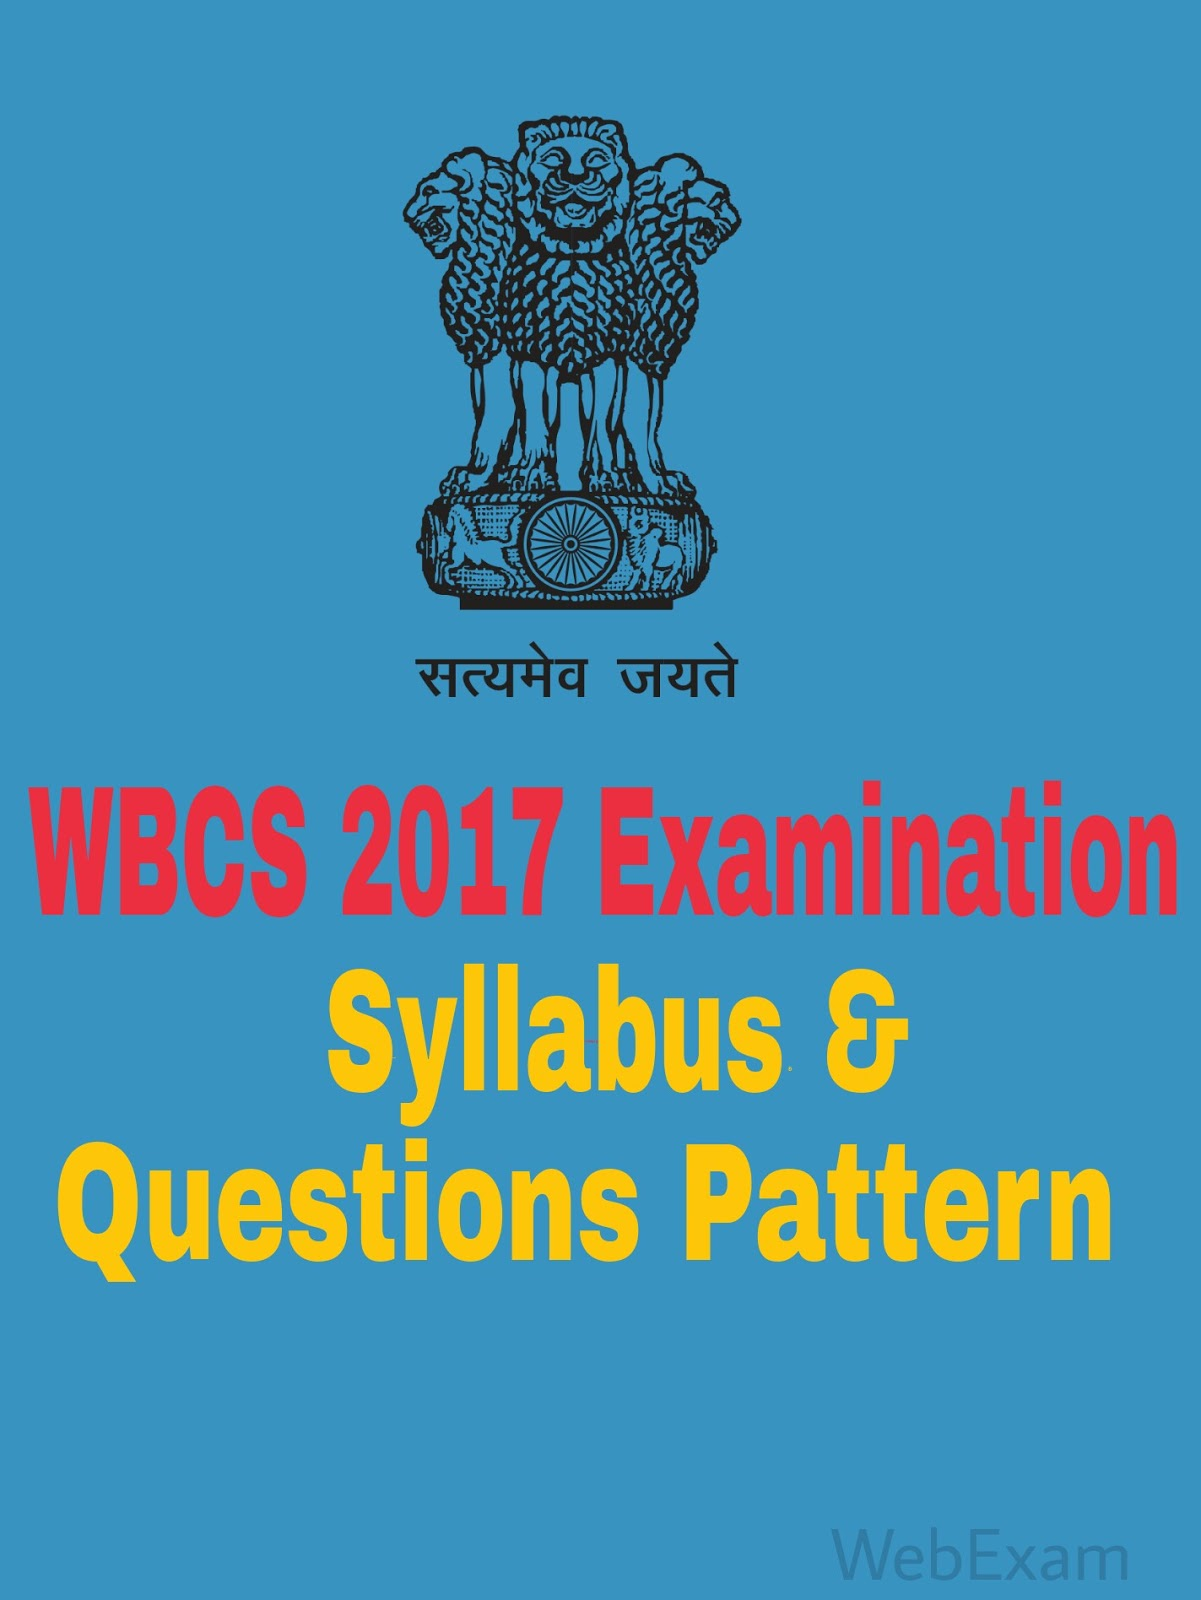 WBCS 2017 Examination all update information, Changes | Notification and Syllabus for WBCS